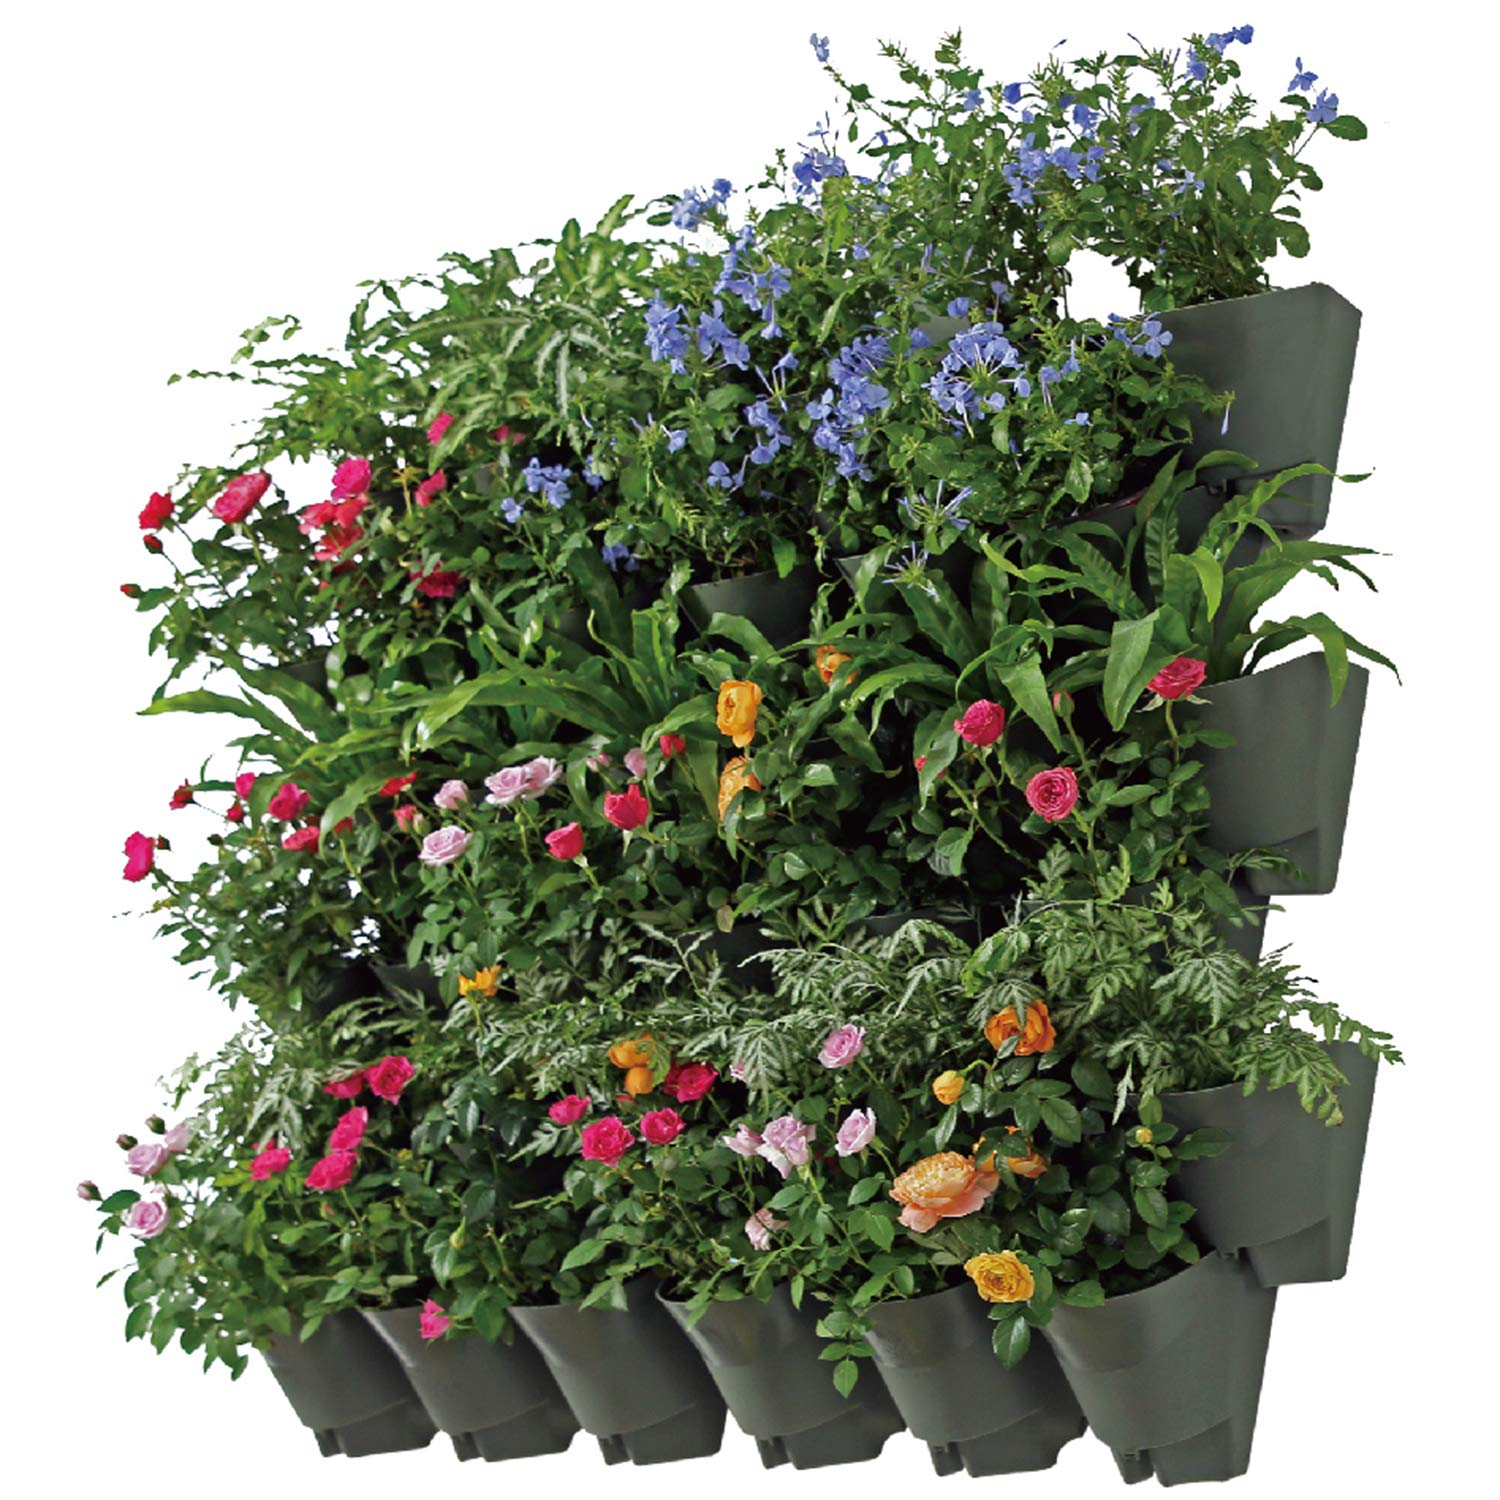 Self Watering Indoor Outdoor Vertical Wall Hangers With Pots Included Wall Plant Hangers Each Wall Mounted Hanging Pot Has 3 Pockets 36 Total Pockets